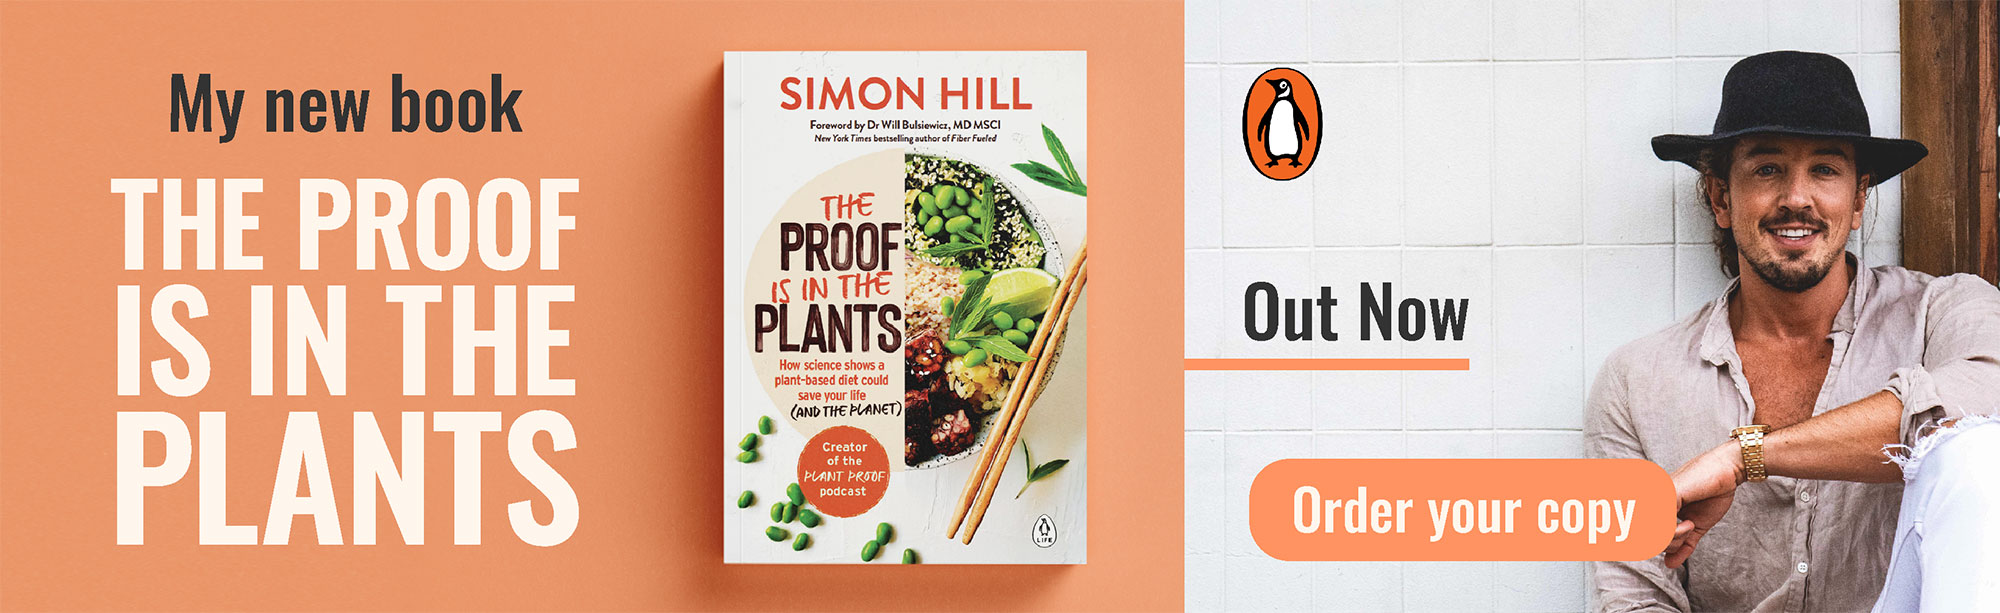 The Proof Is In the Plants Book Is Out Now!